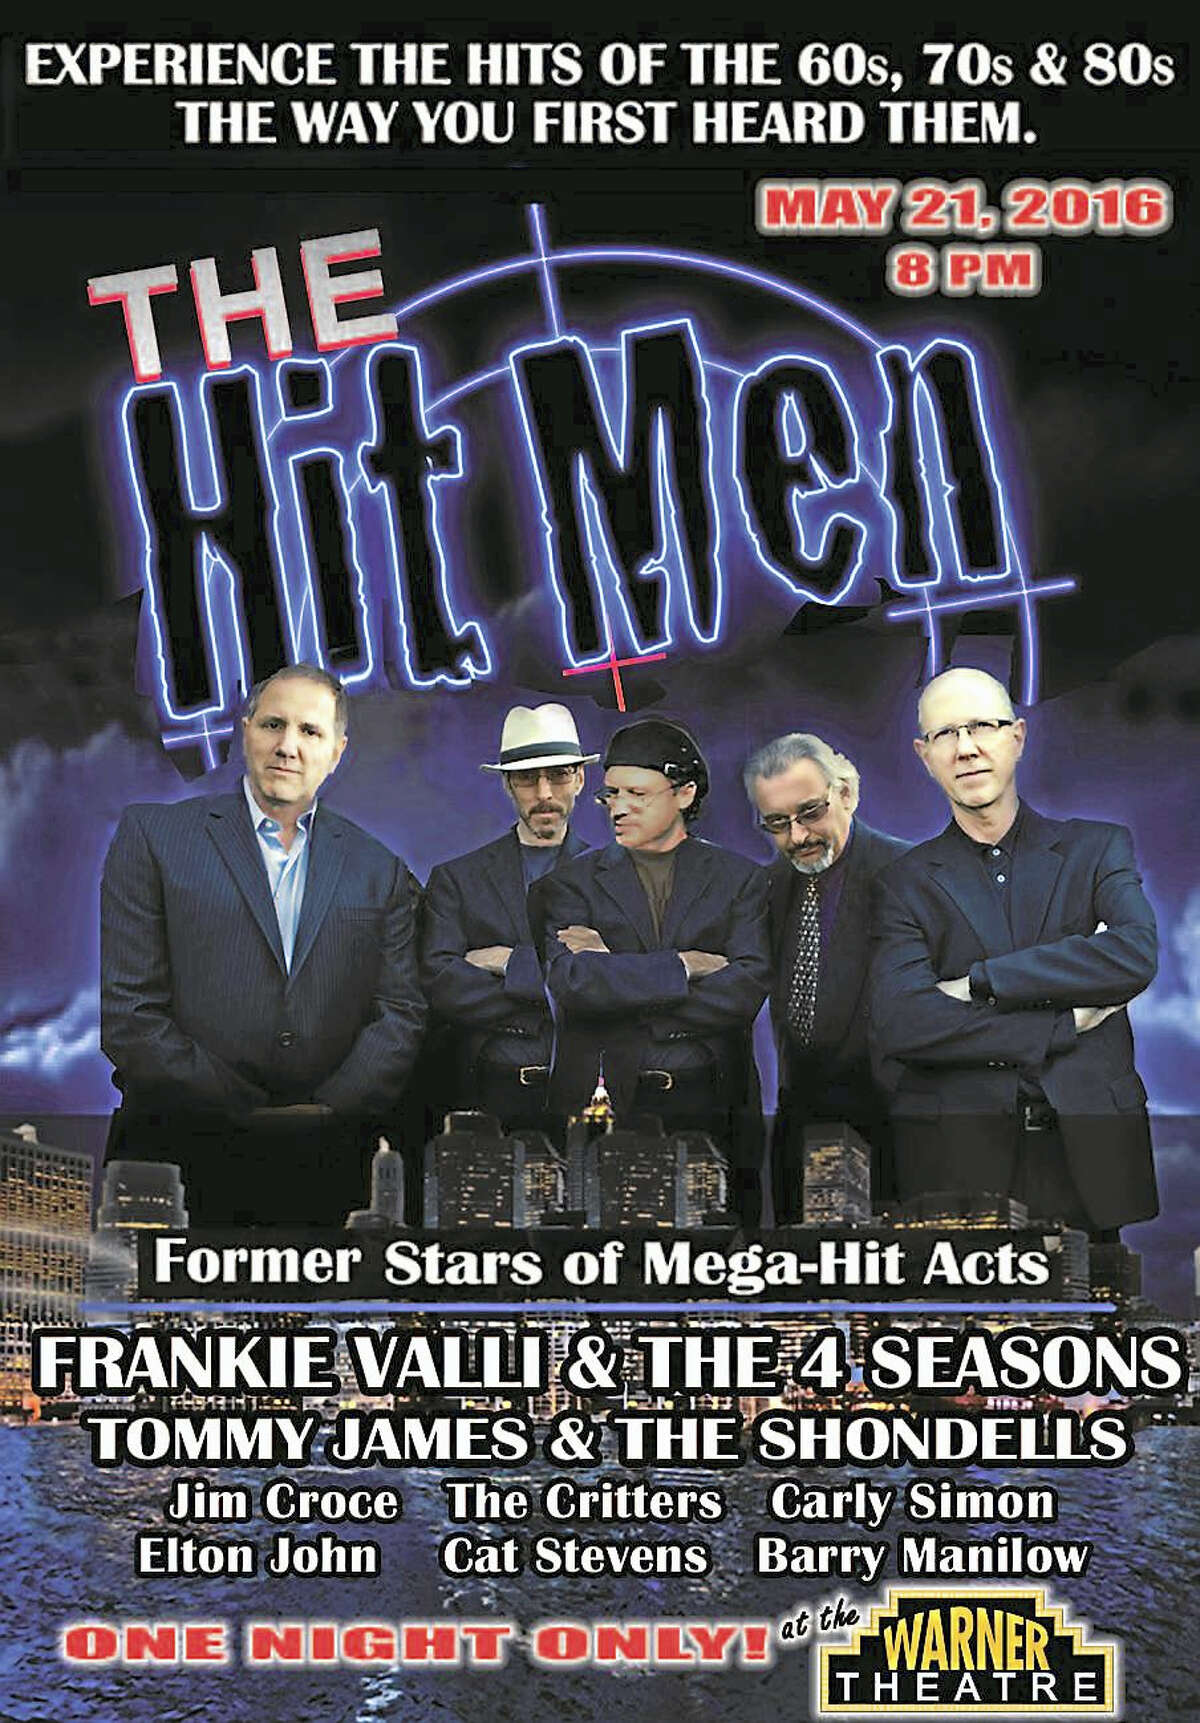 """Contributed image courtesy of the Warner Theatre """"The Hit Men"""" bring the music of past decades to the Warner Theatre in May; tickets are available now."""